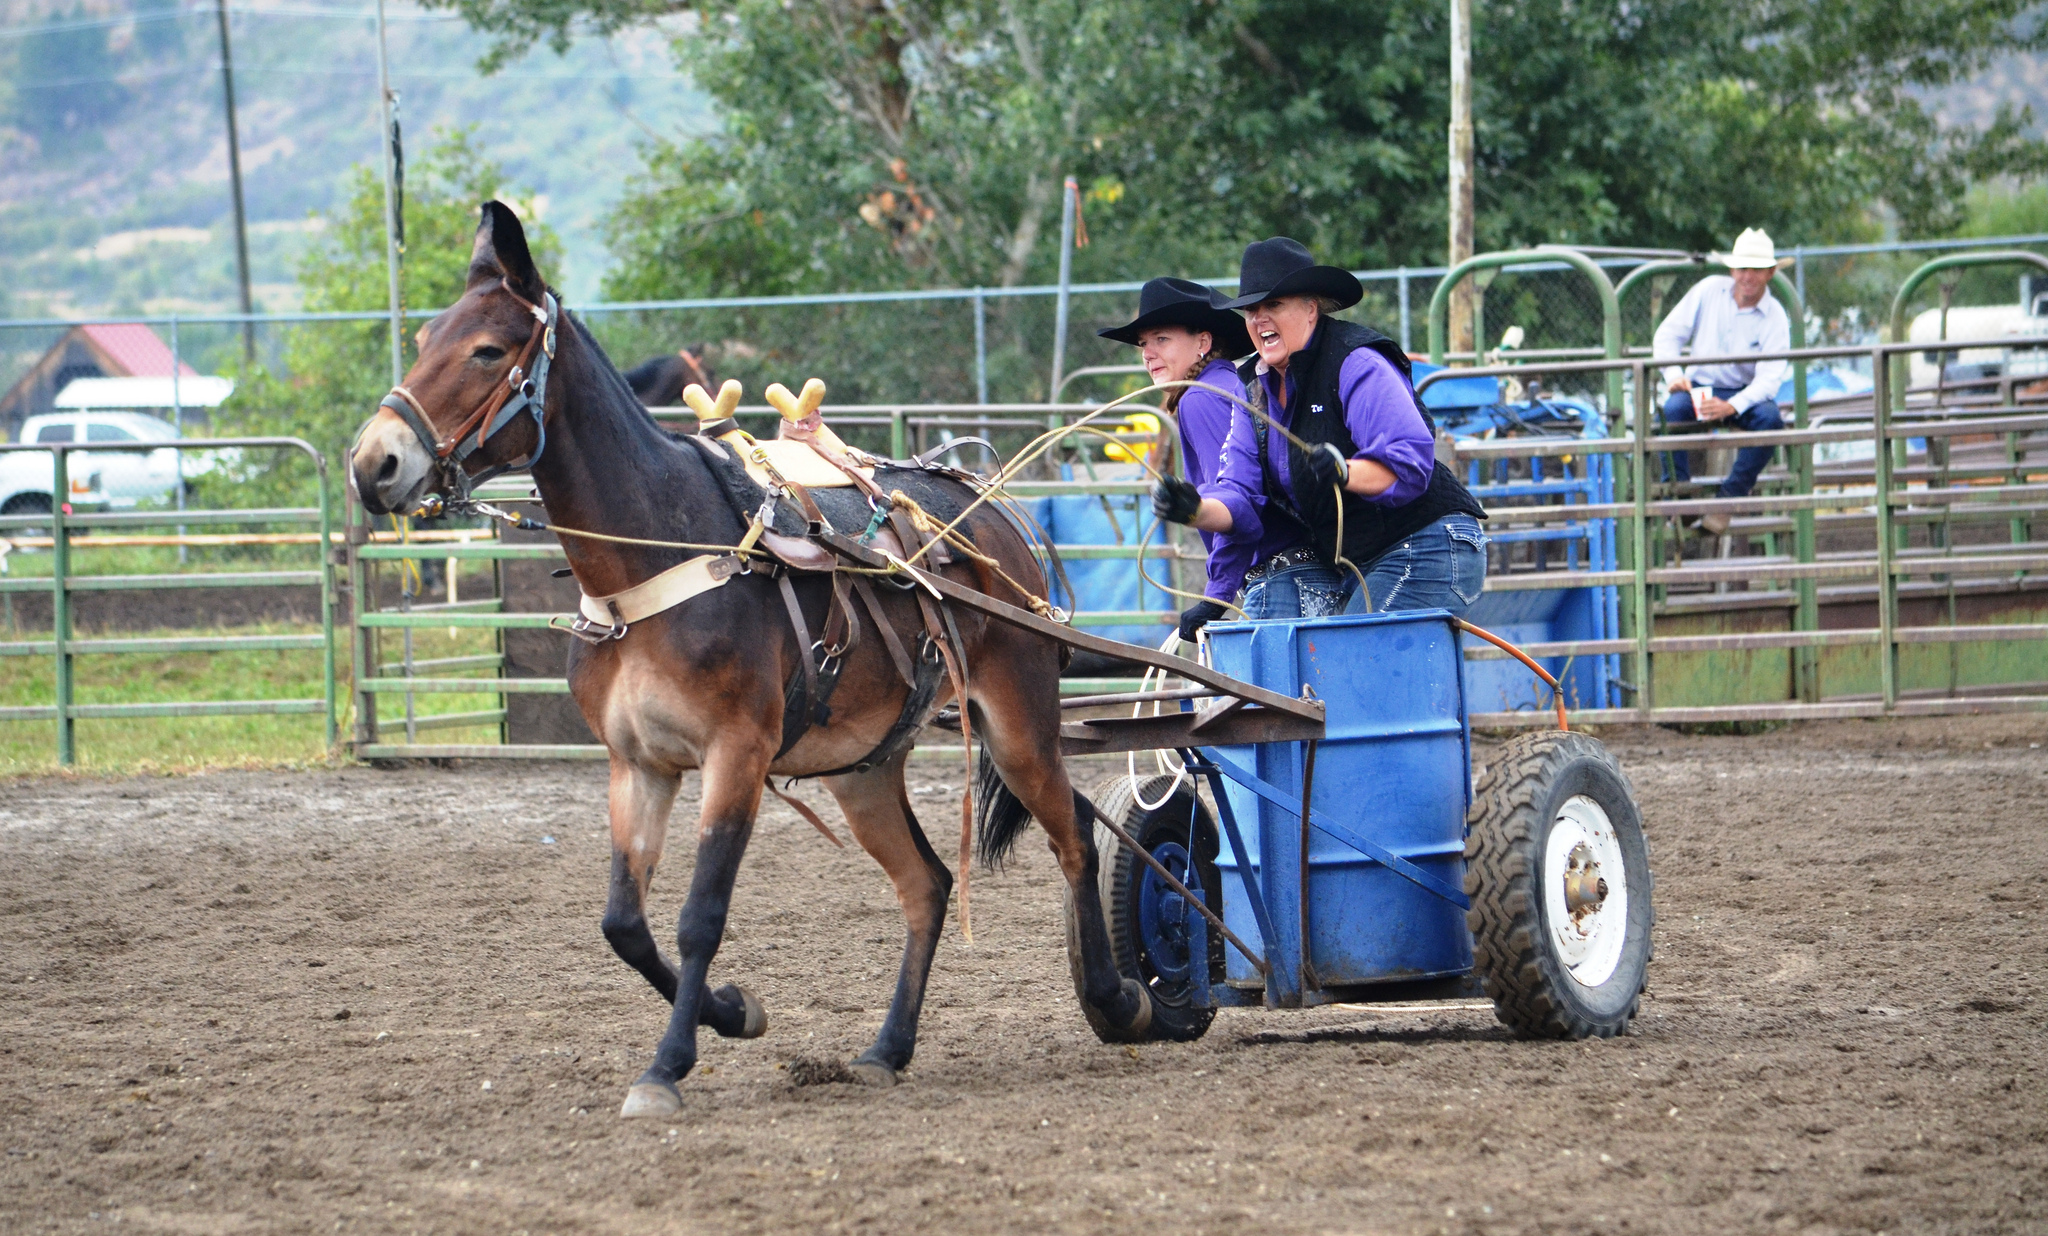 Two cowgirls riding in a blue chariot pulled by a mule competing in the Mule Chariot racing at the Baker COunty Fair and Panhandle Rodeo